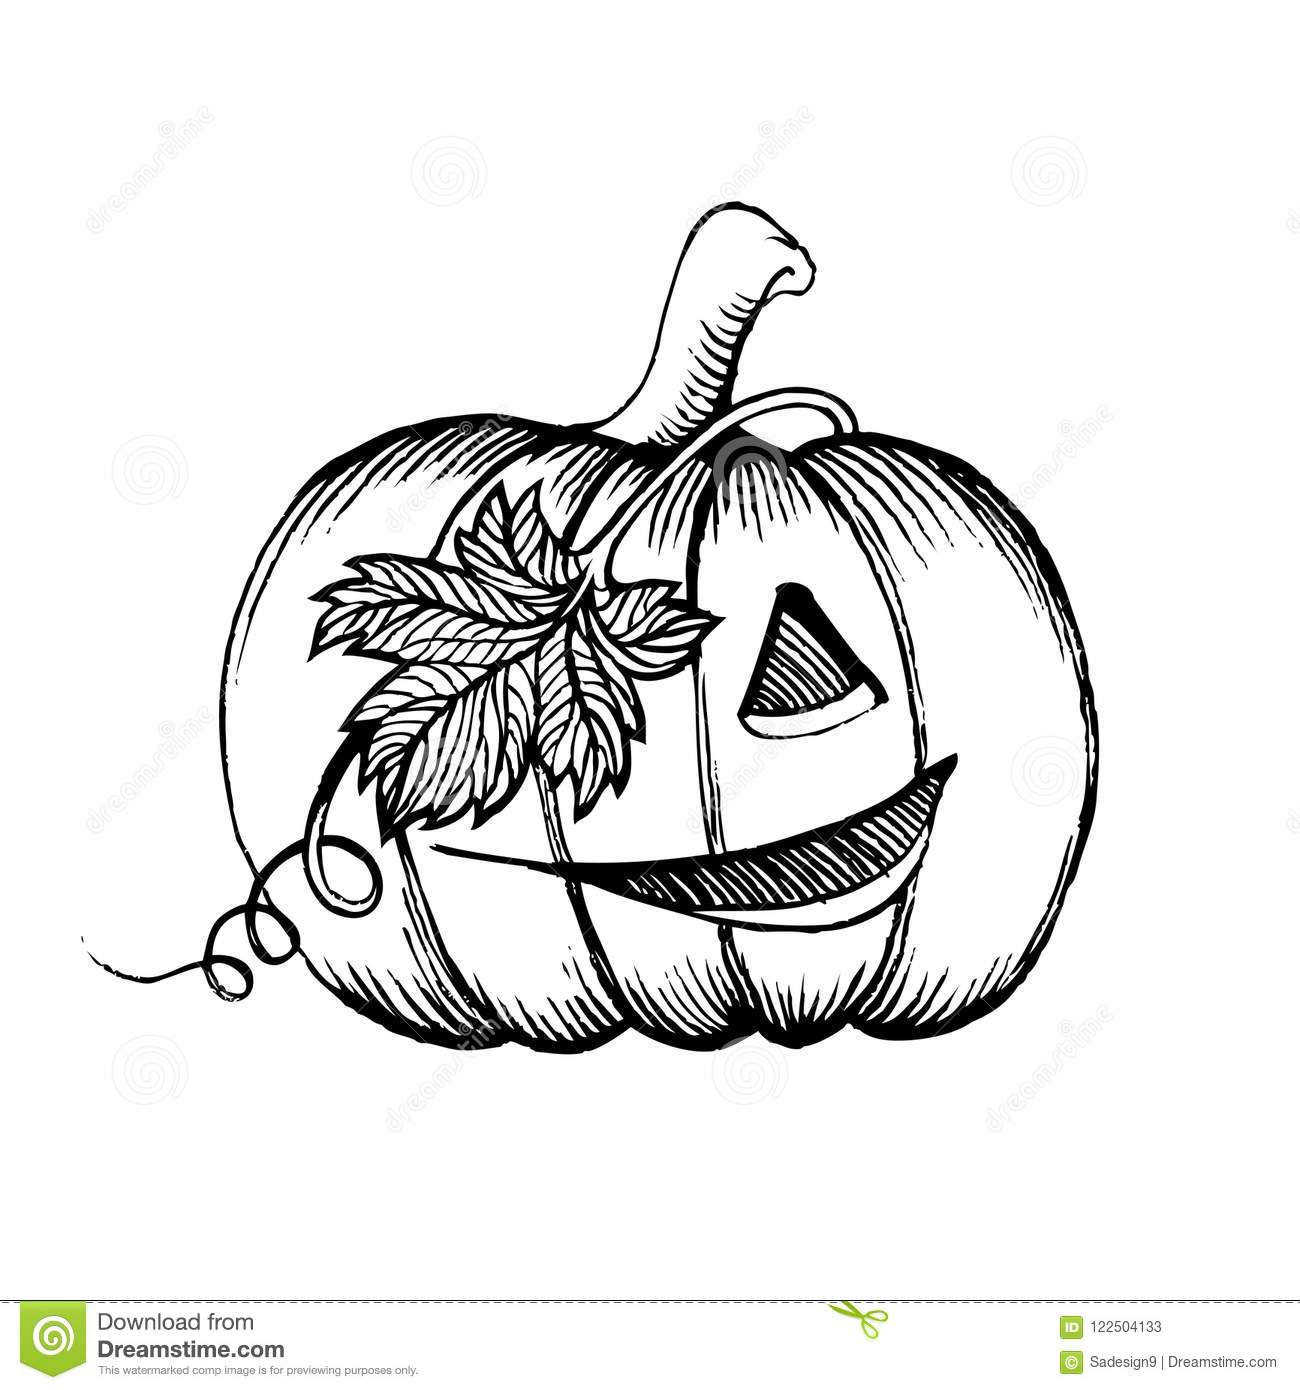 Halloween Pumpkin Drawing Picture.Halloween Pumpkin Sketch Drawing With Leaves Pirate Character